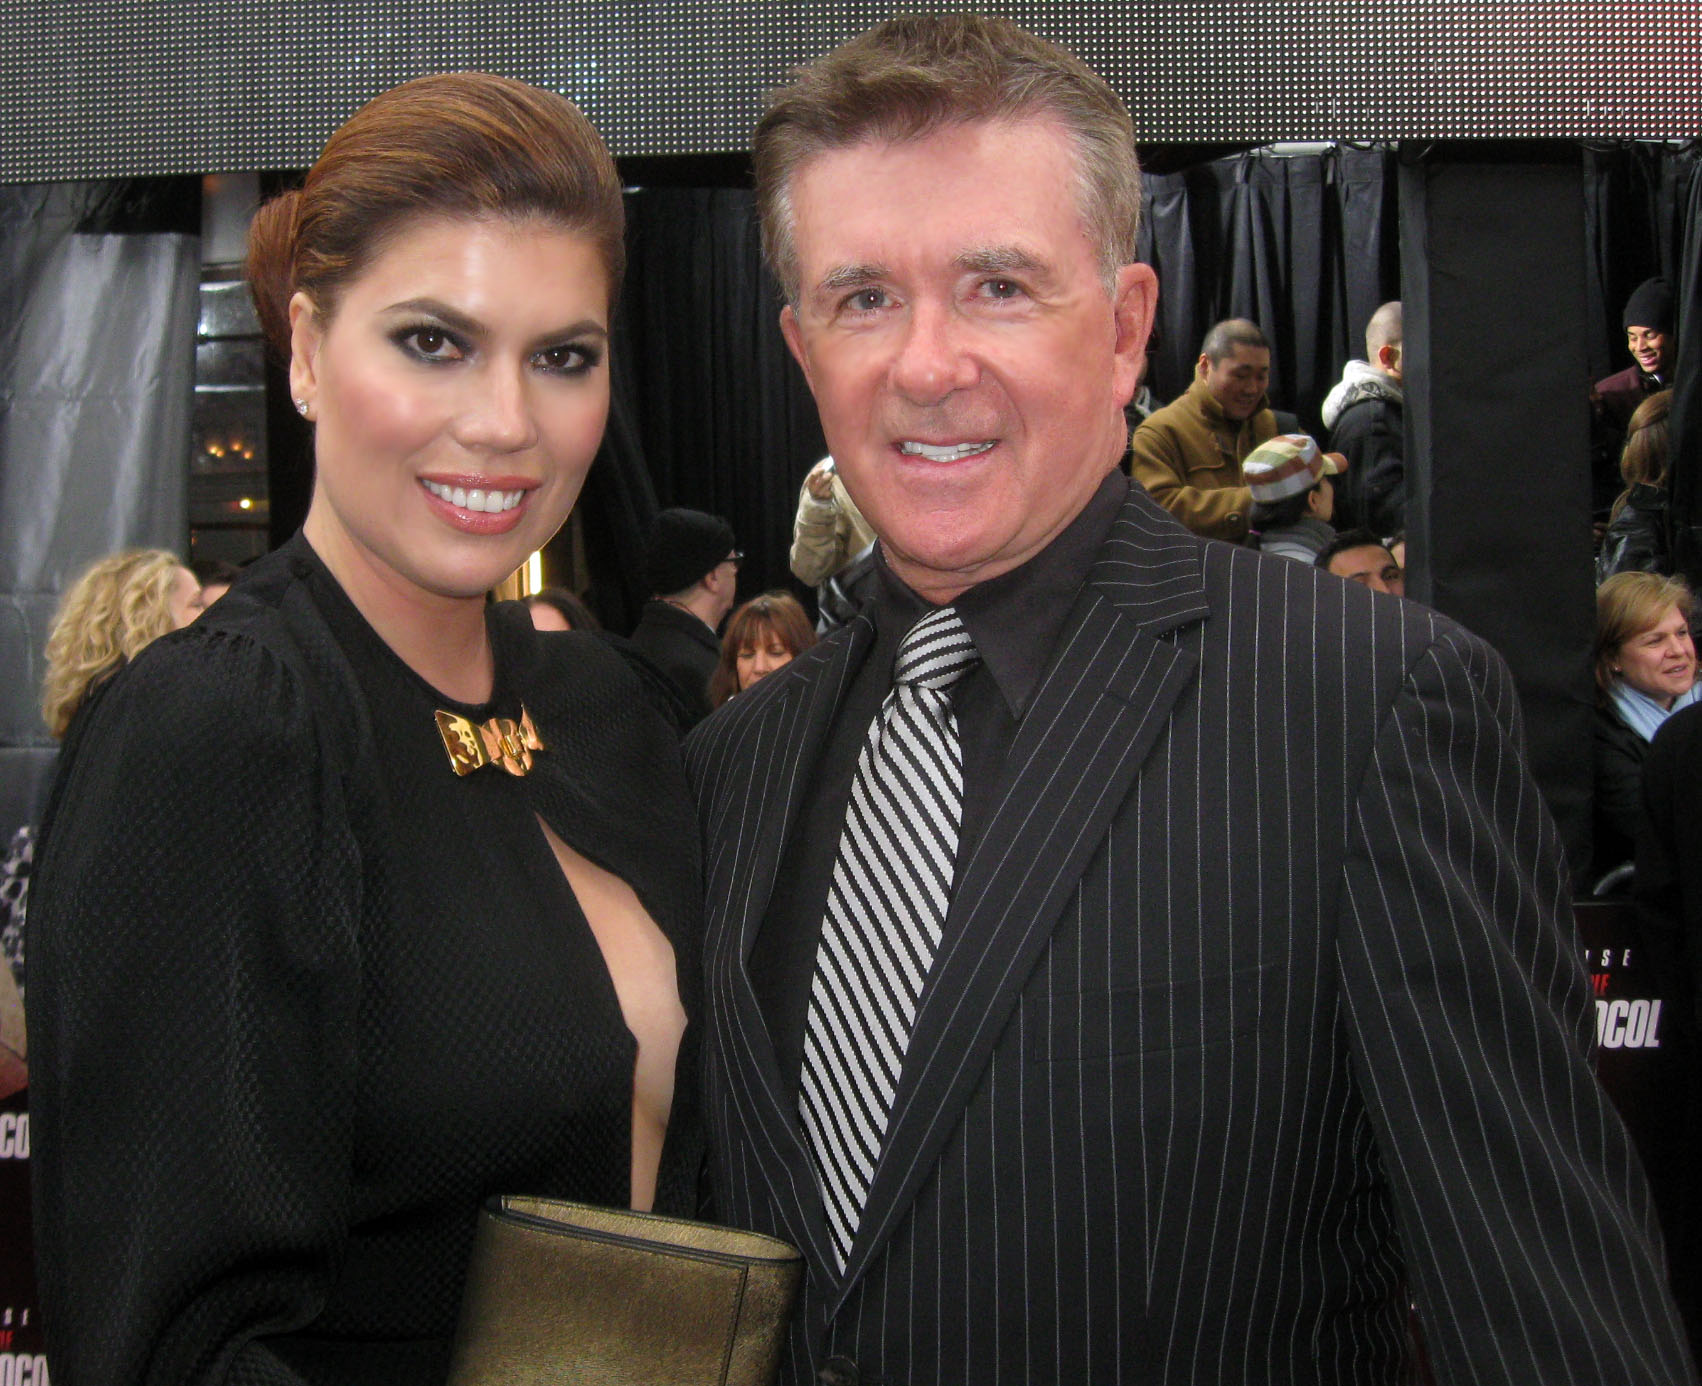 Gorgeous model Tanya Callau and hubby Alan Thicke ...